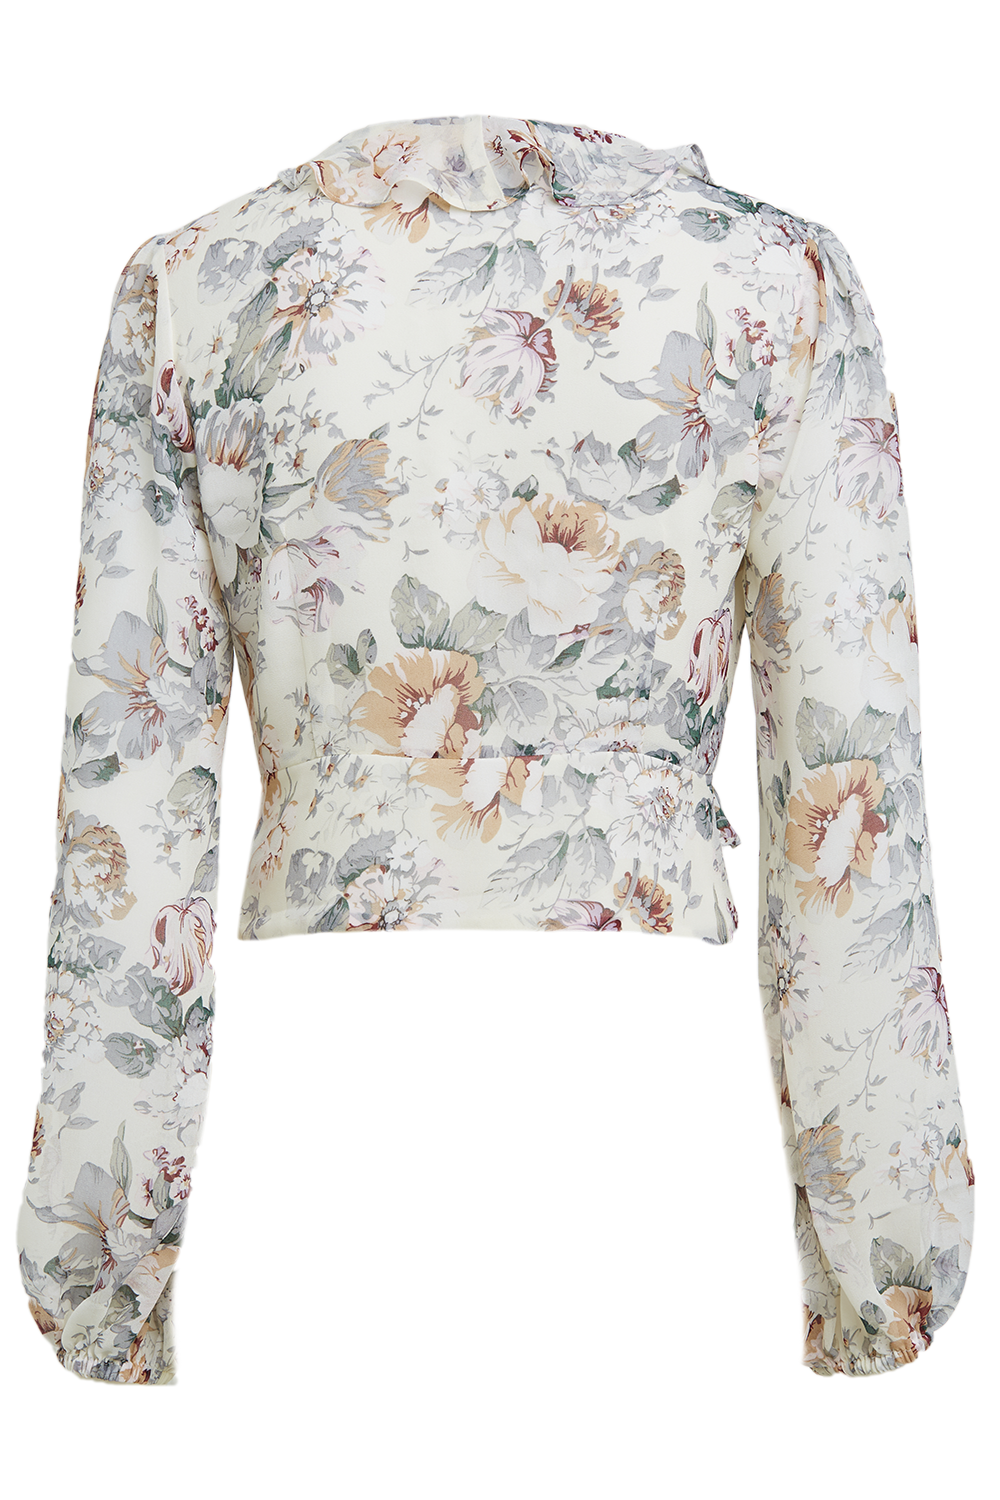 NELLY TOP in colour CLOUD DANCER